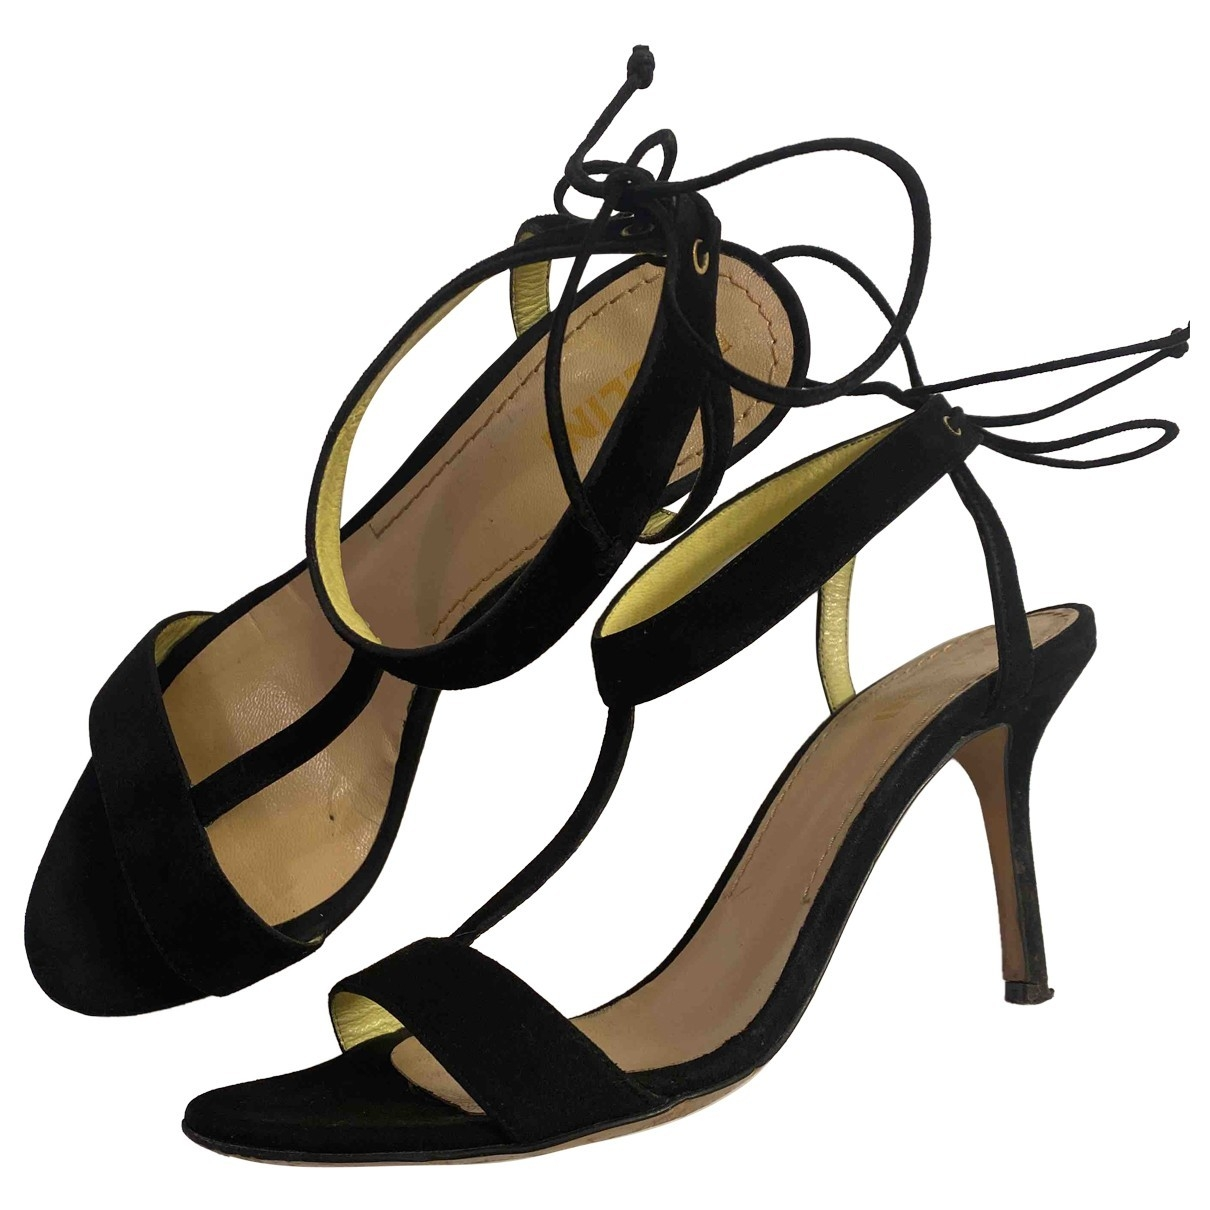 Pollini \N Black Leather Sandals for Women 36 EU